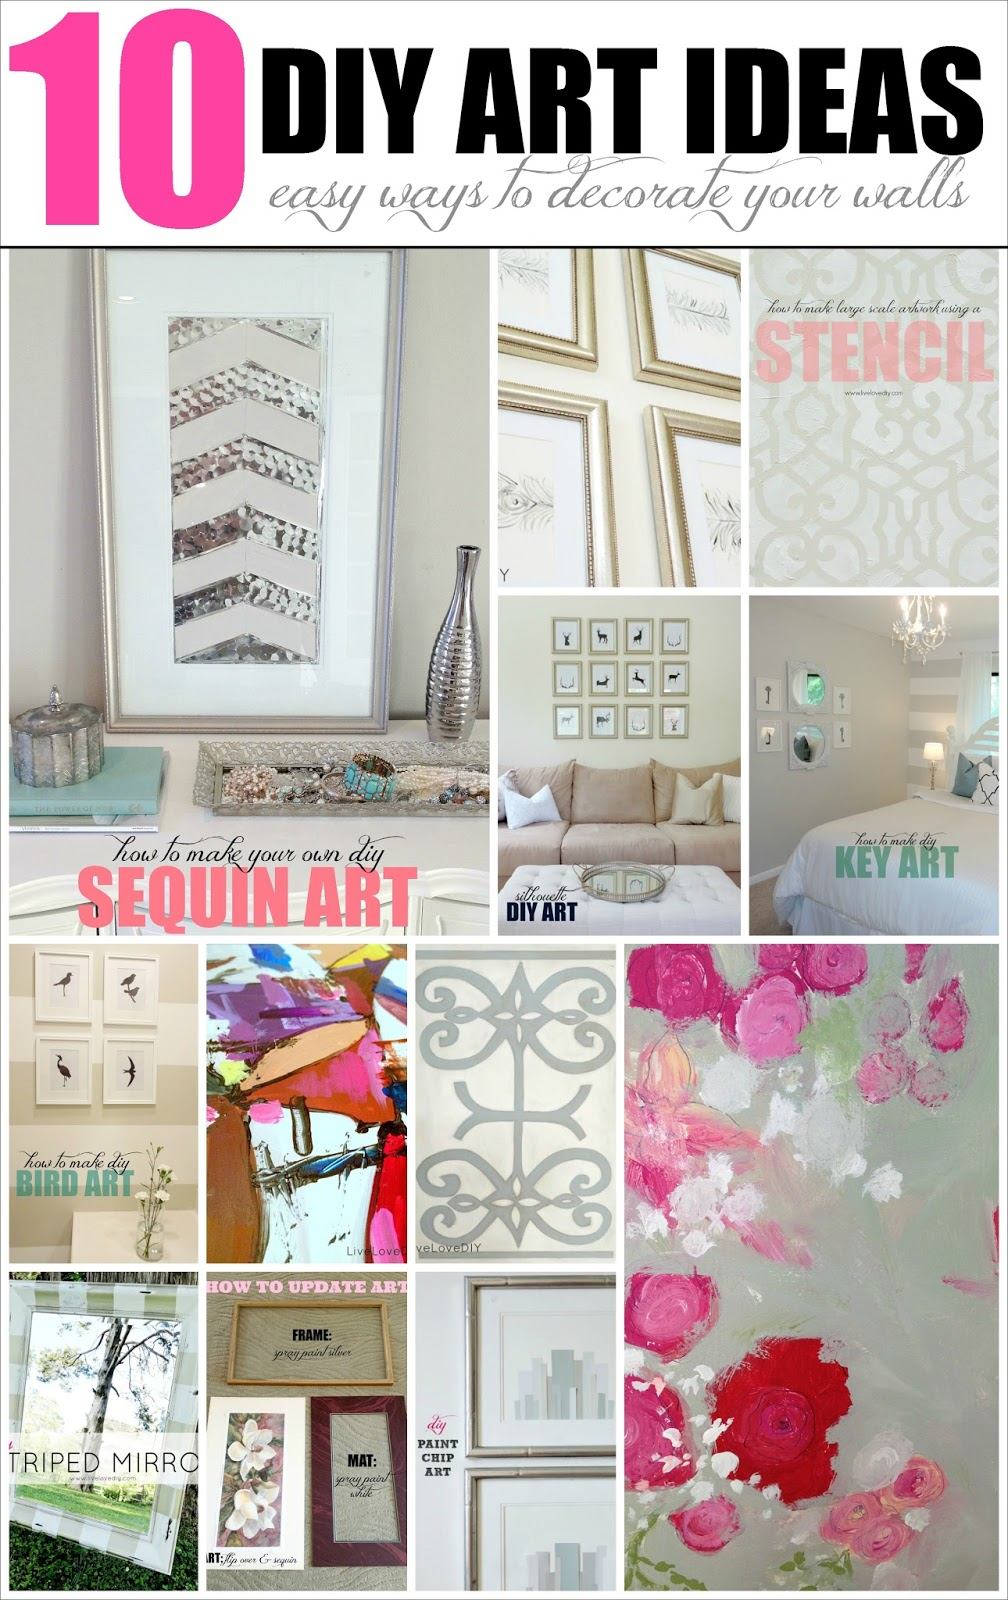 livelovediy 10 diy art ideas easy ways to decorate your On room decor you can make